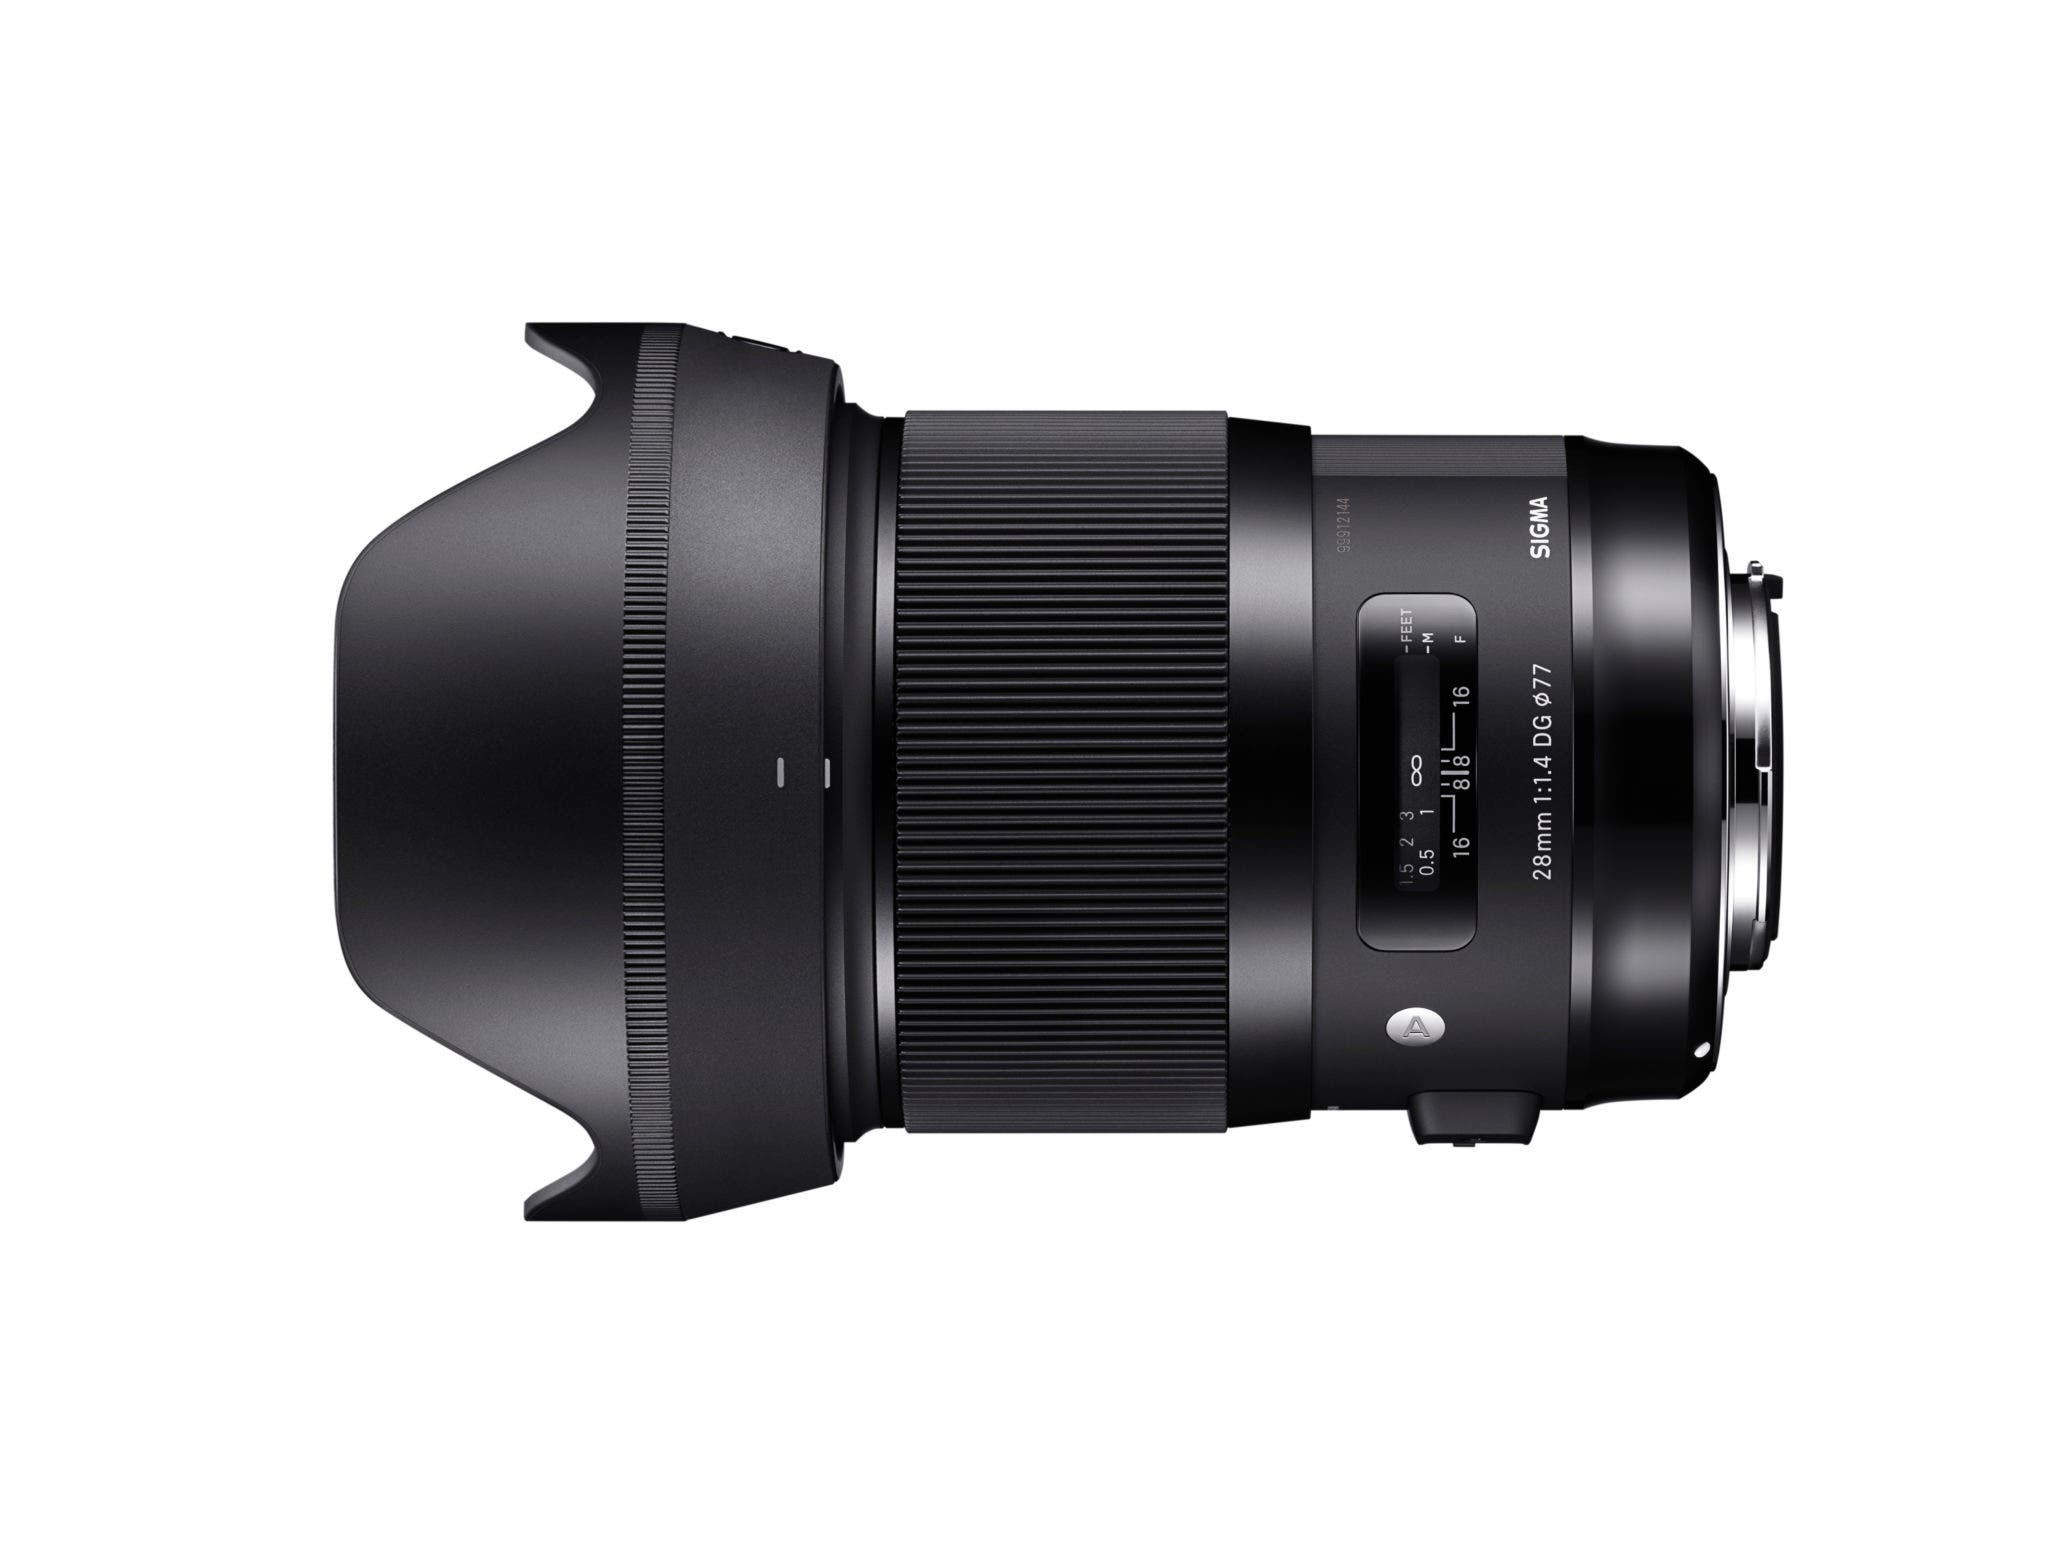 Sigma Announces 5 New Lenses for the Photo World at Photokina